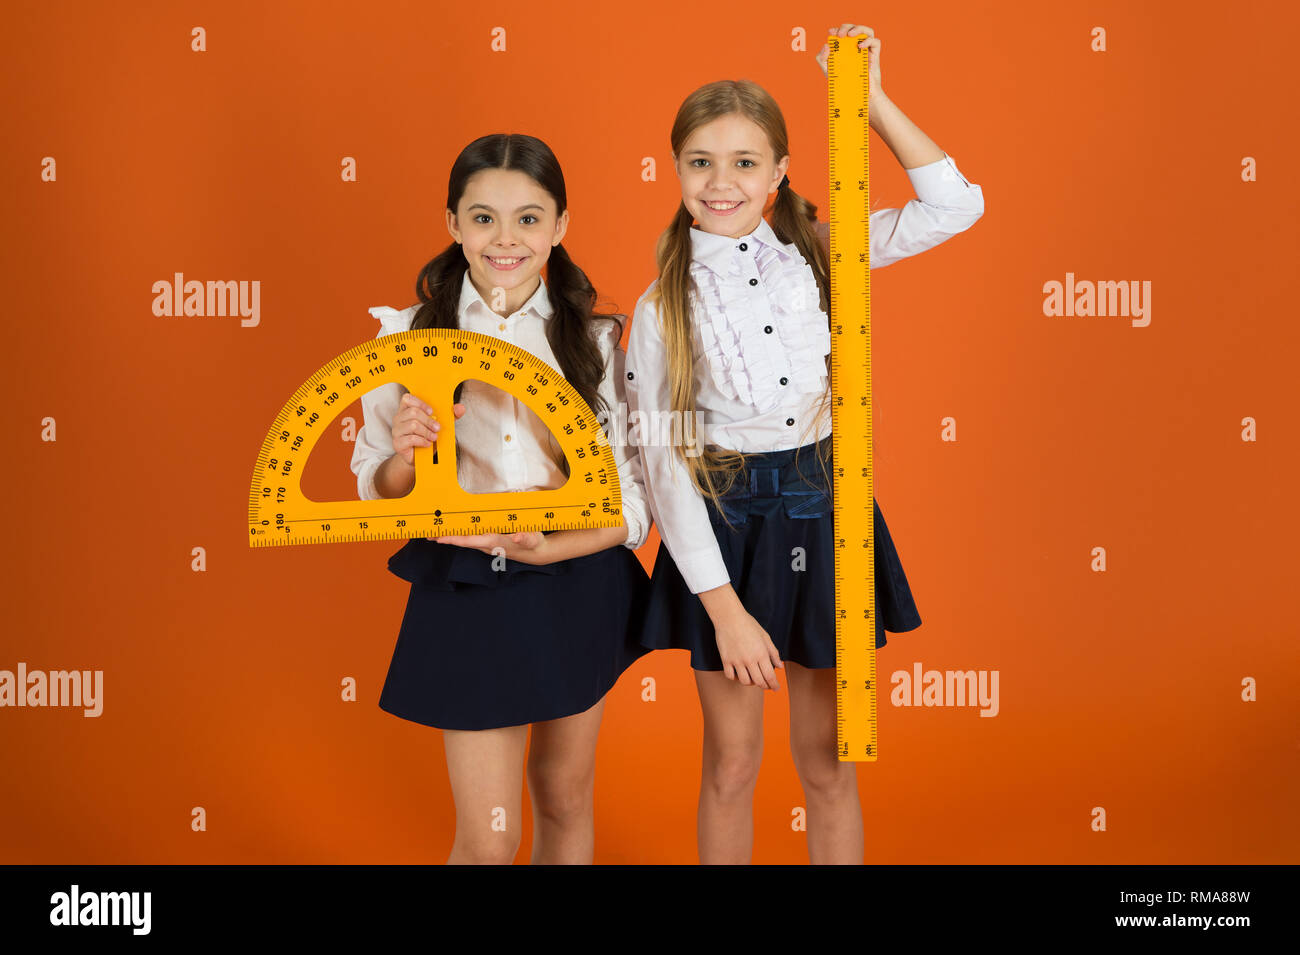 Pupil cute girls with big rulers. Geometry favorite subject. Education and school concept. School students learning geometry. Kids school uniform on orange background. STEM school disciplines. - Stock Image